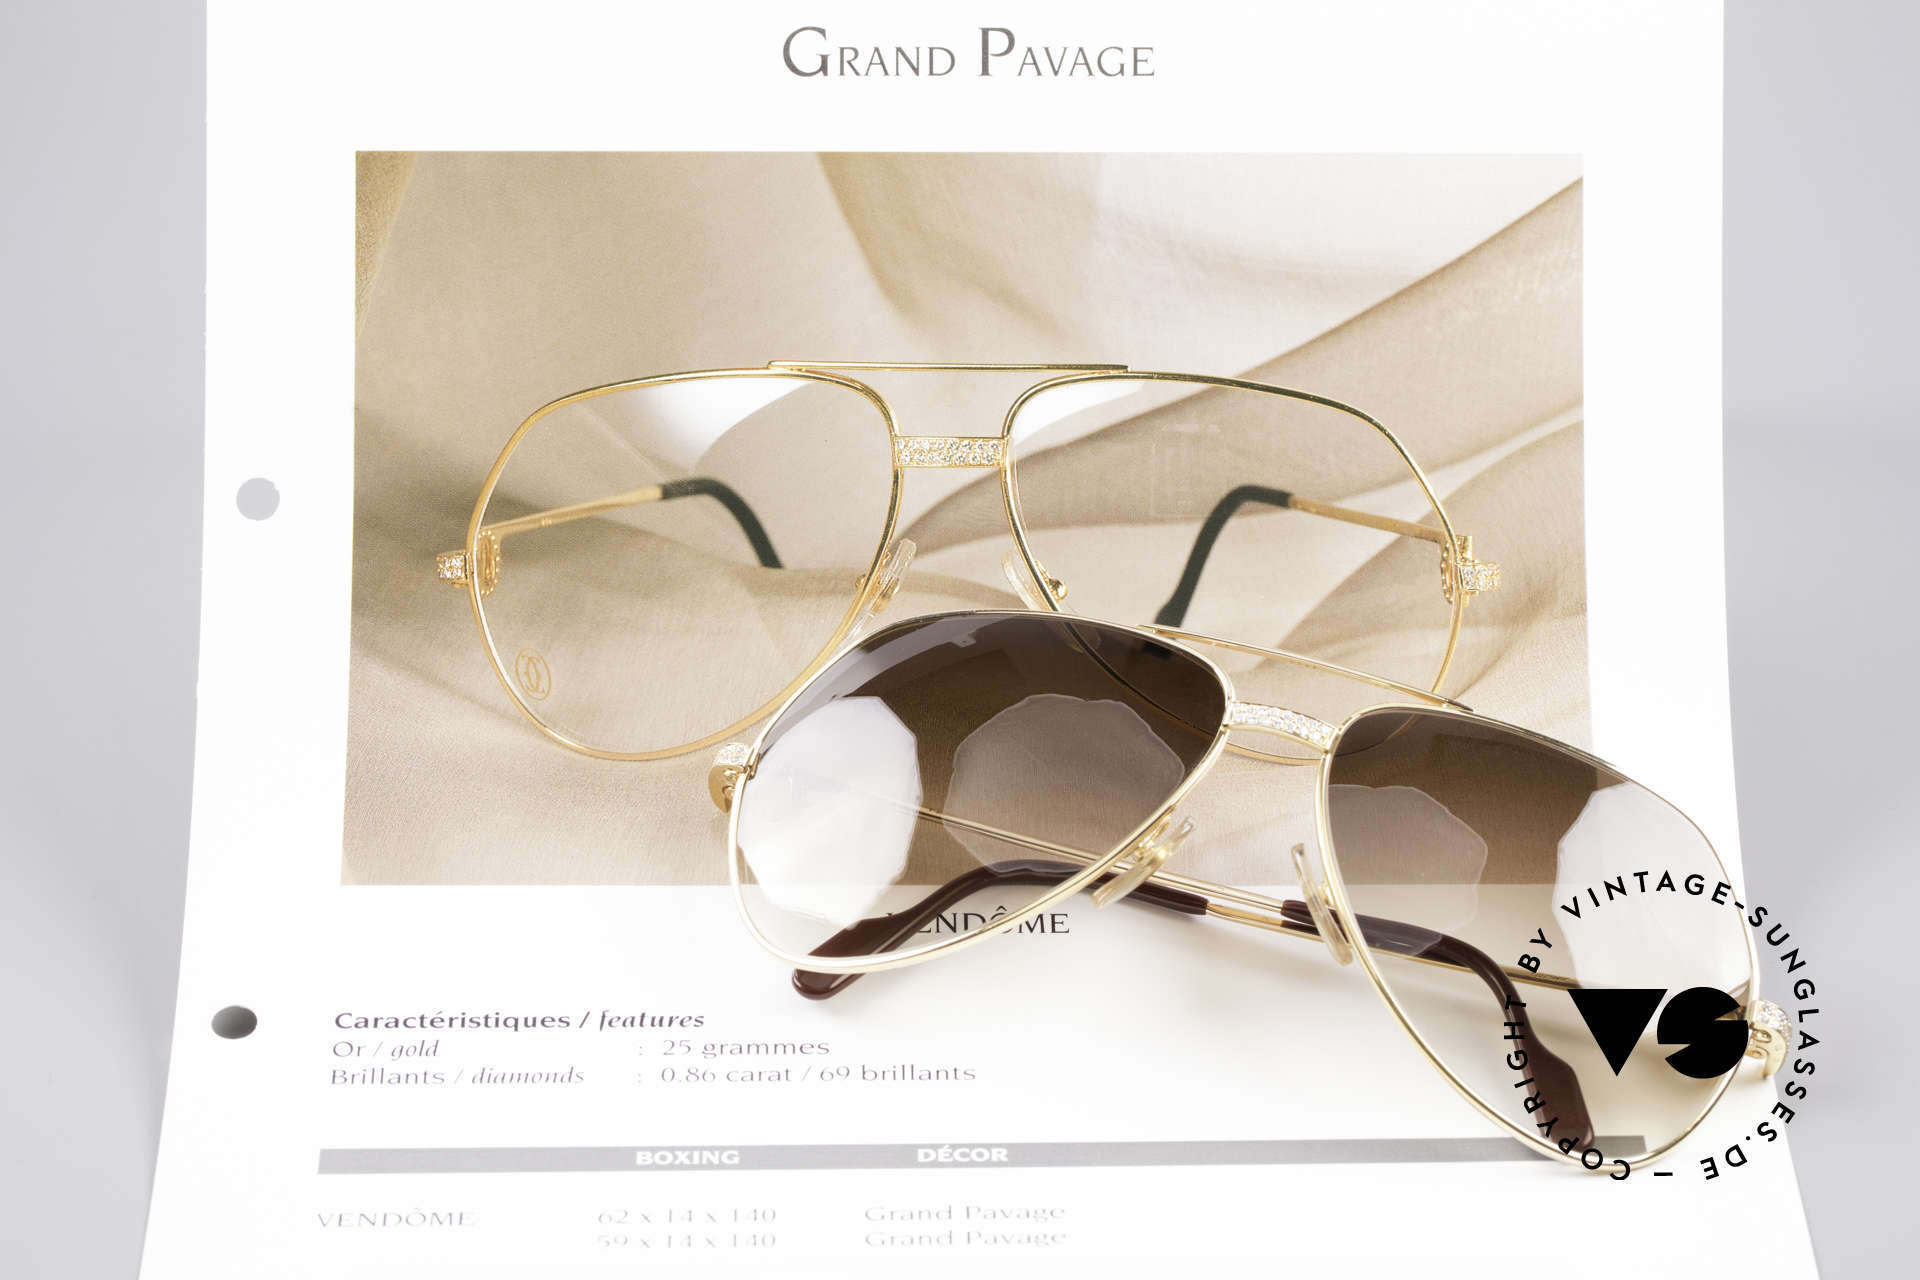 Cartier Grand Pavage Diamond Glasses, LUXURY JEWELRY vintage sunglasses (25 grams of GOLD), Made for Men